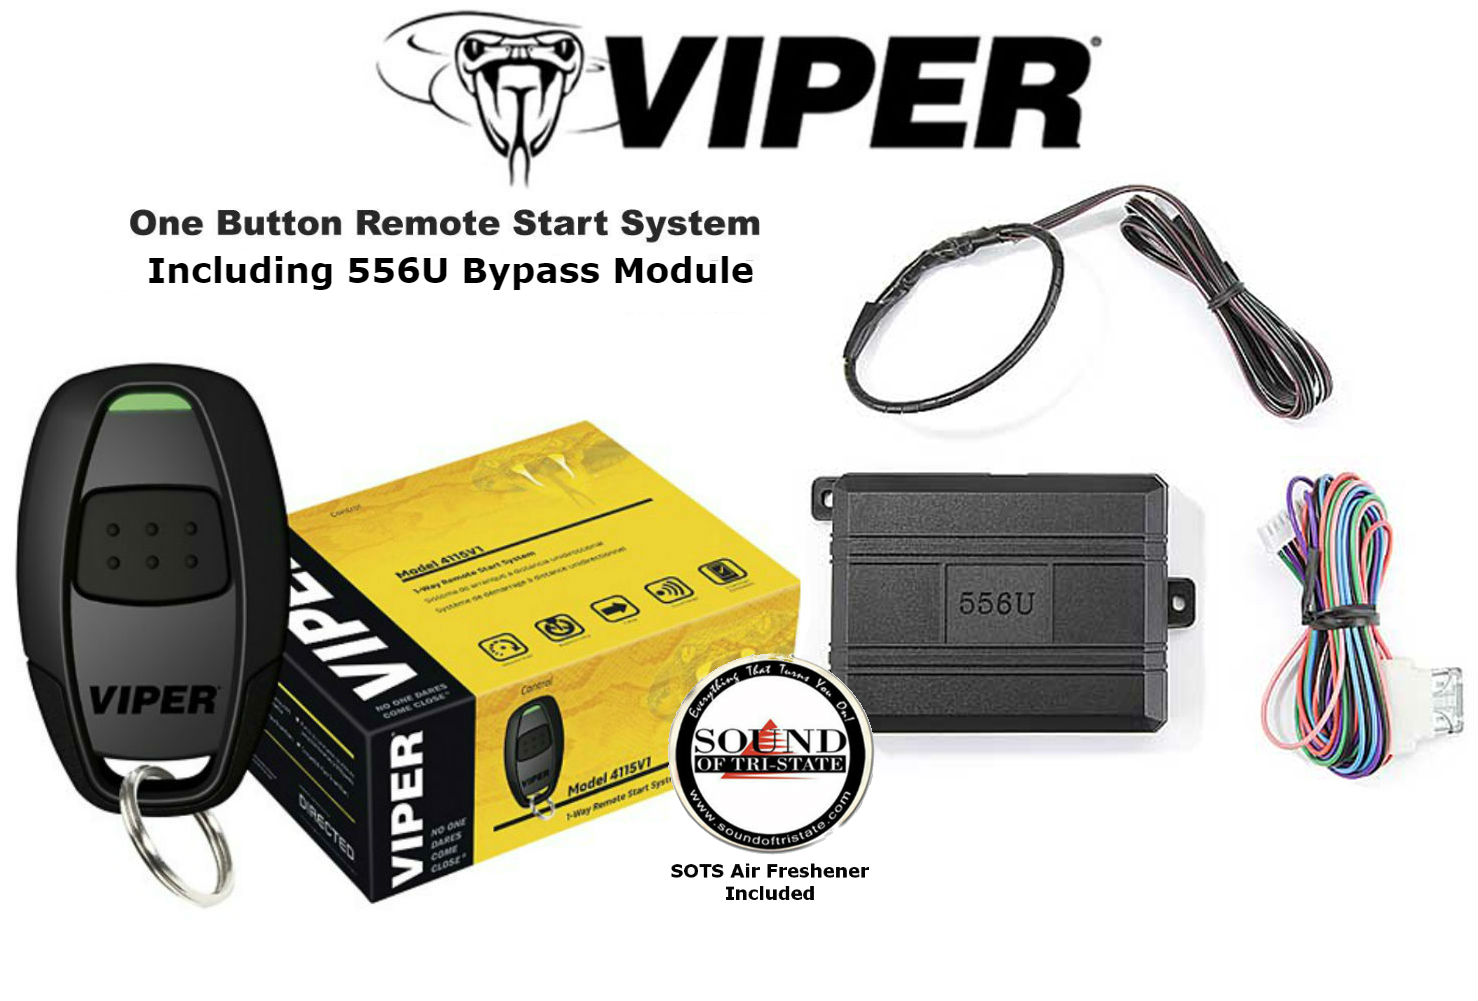 viper 4115v remote start wiring diagram headphone volume control 1 button car system w bypass